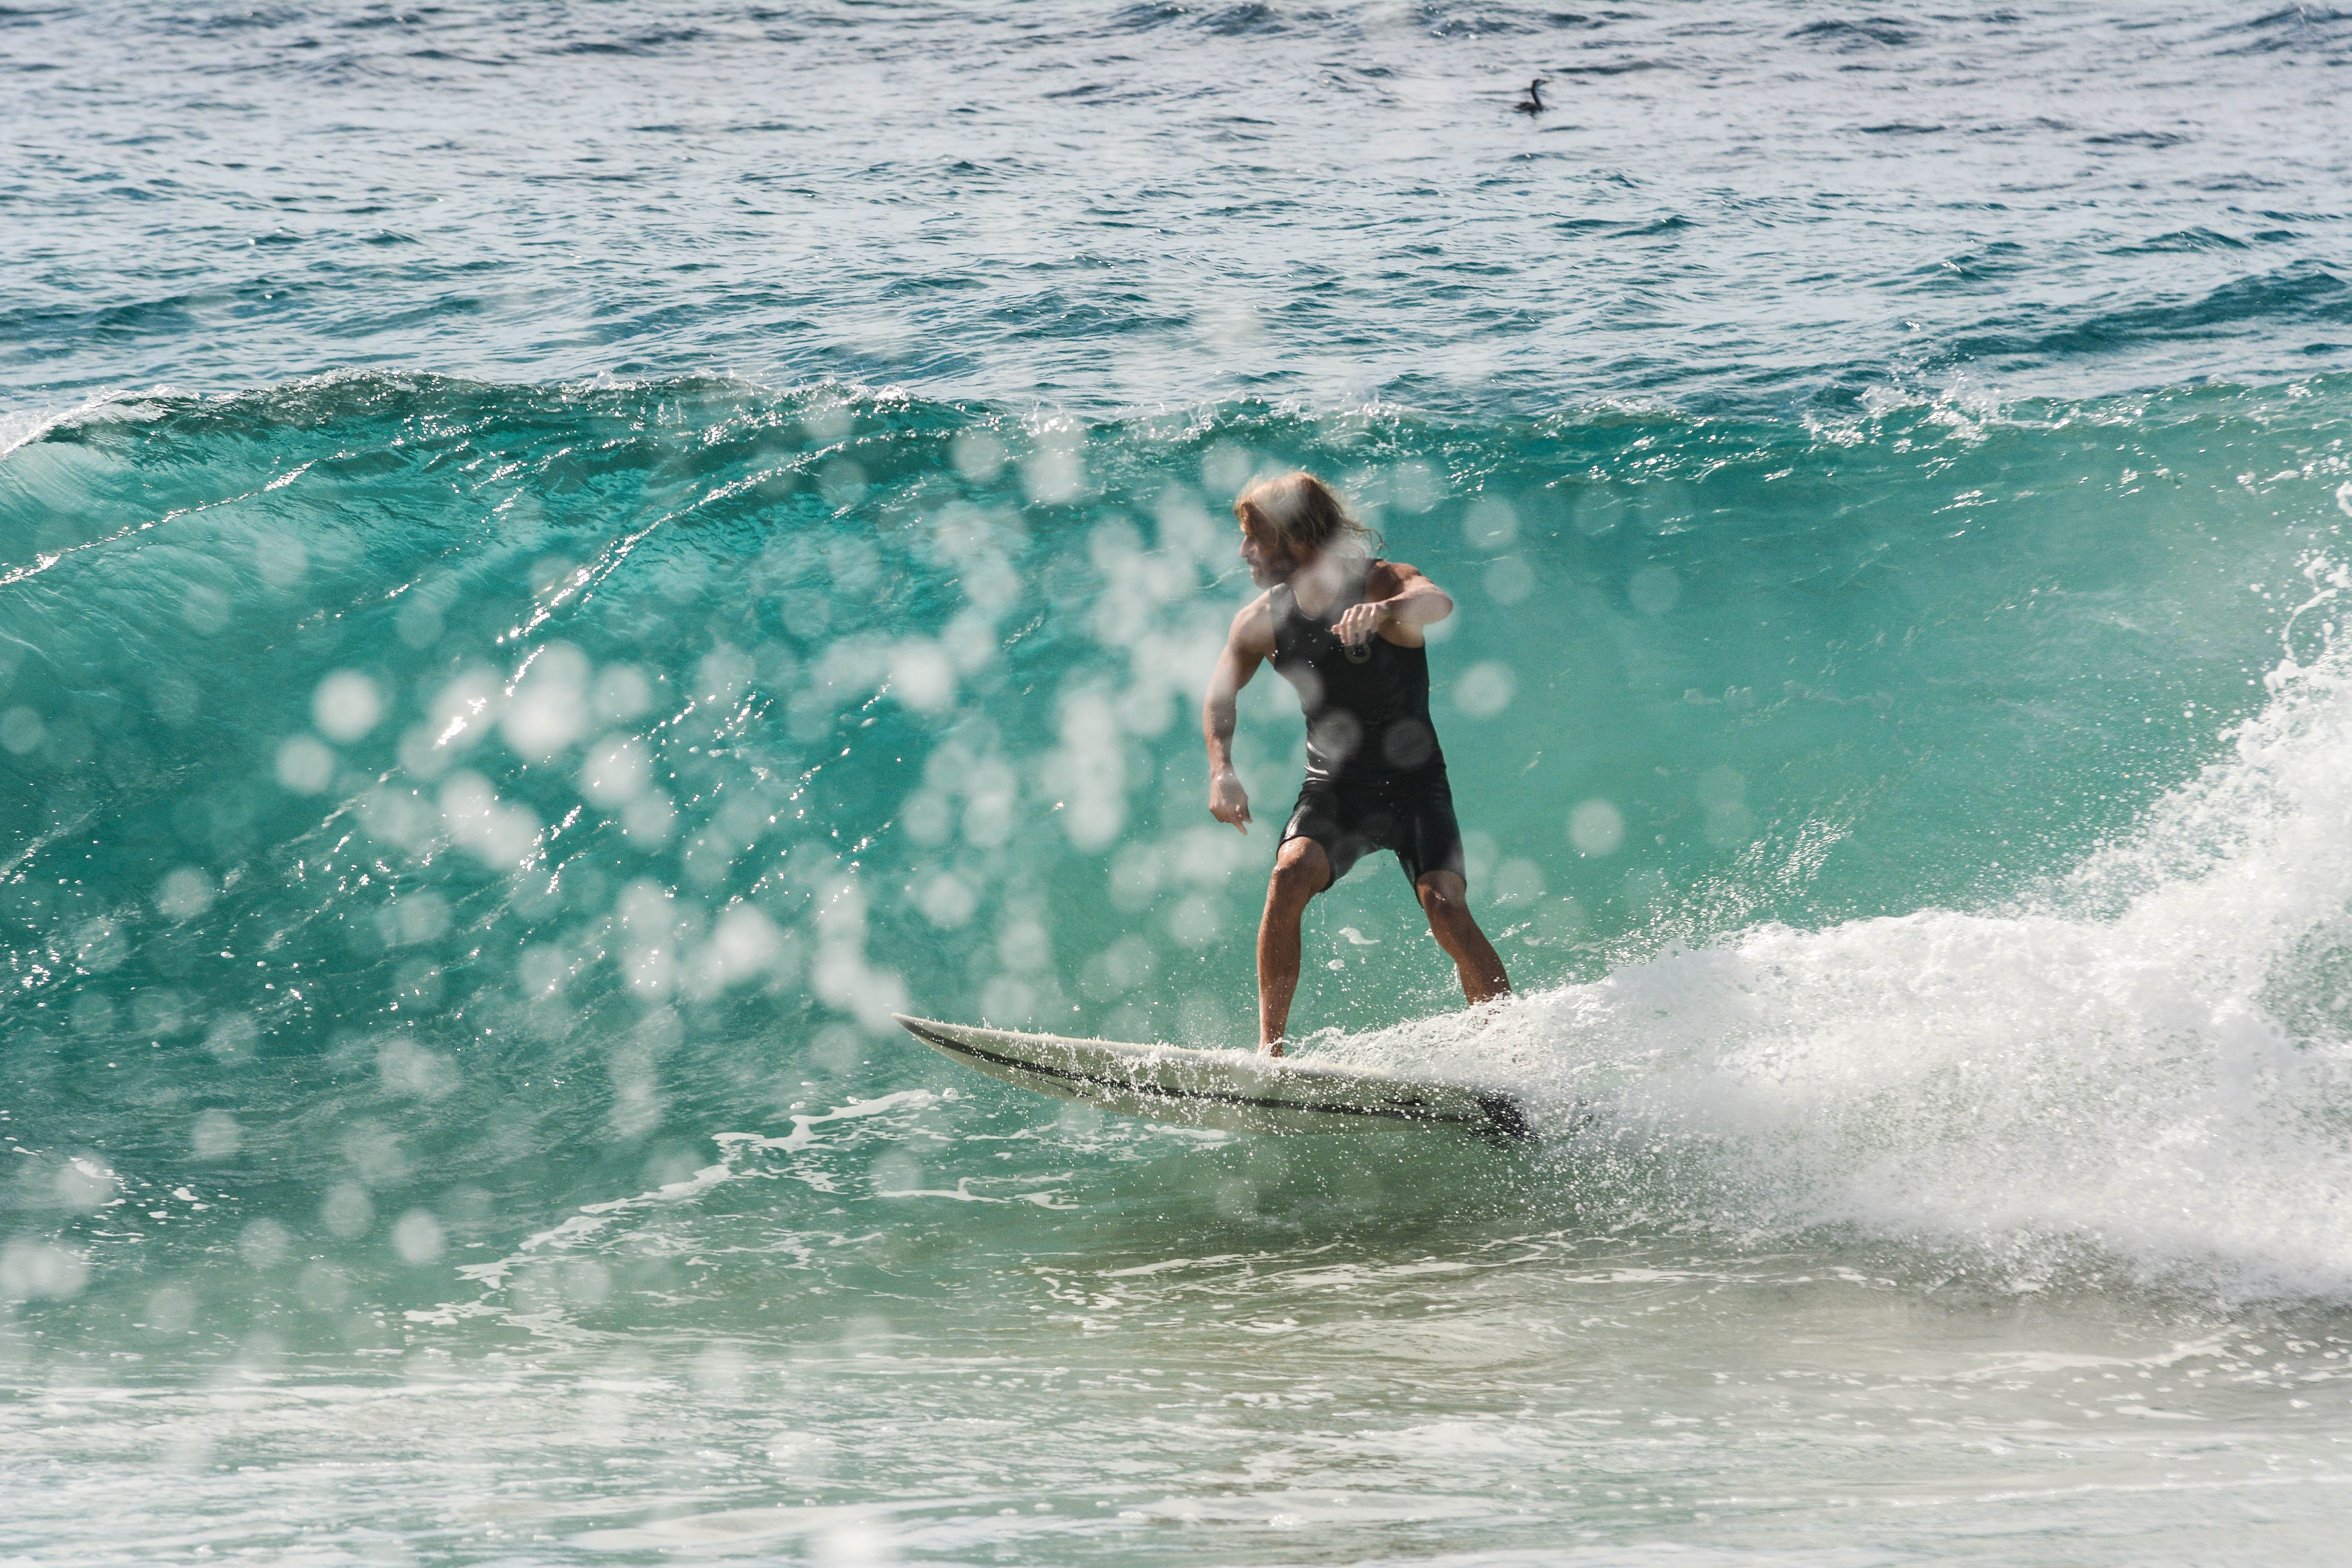 Person Surfing on Body of Water